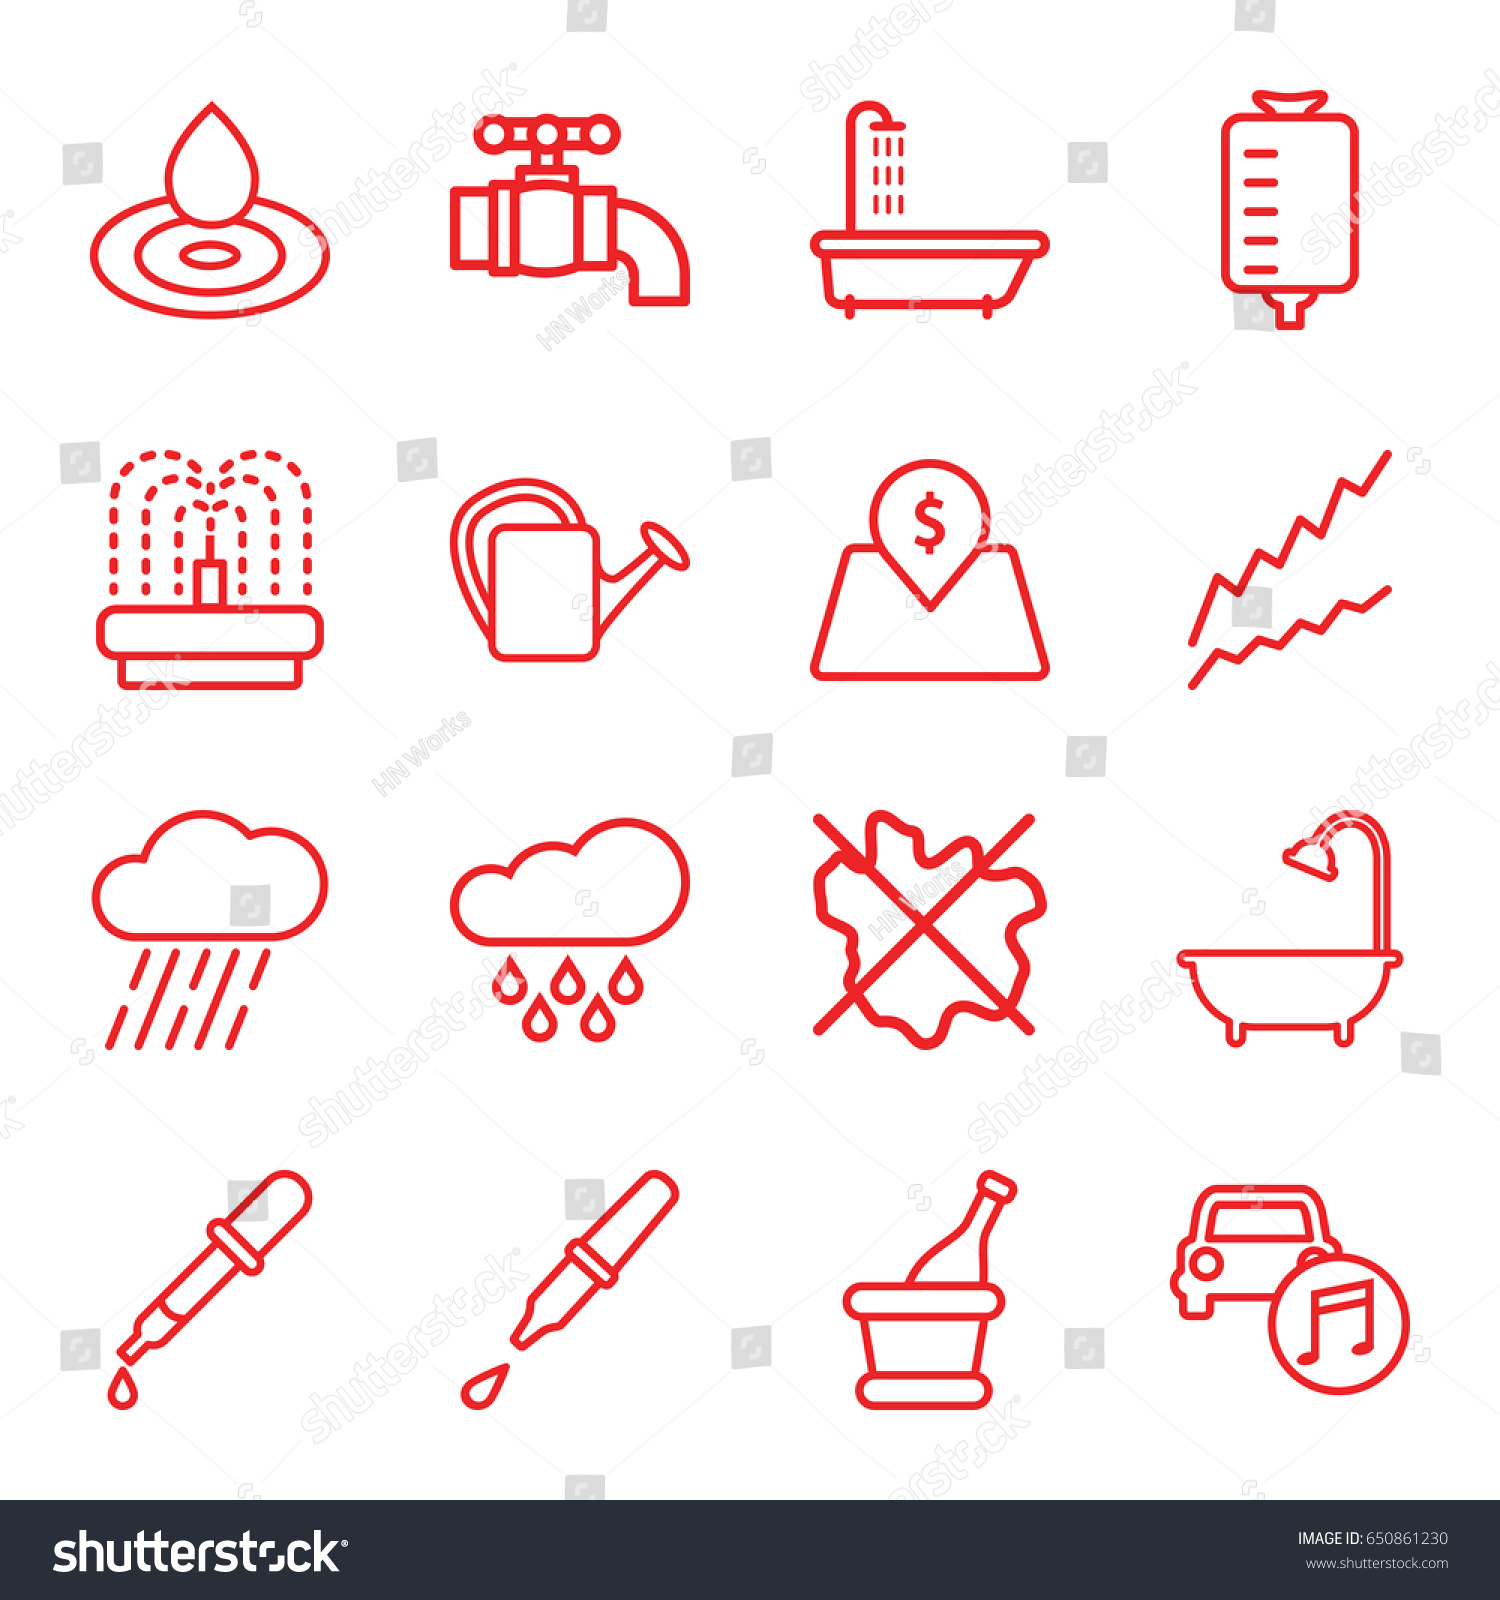 Drop icons set set 16 drop stock vector 650861230 shutterstock drop icons set set of 16 drop outline icons such as shower pipette biocorpaavc